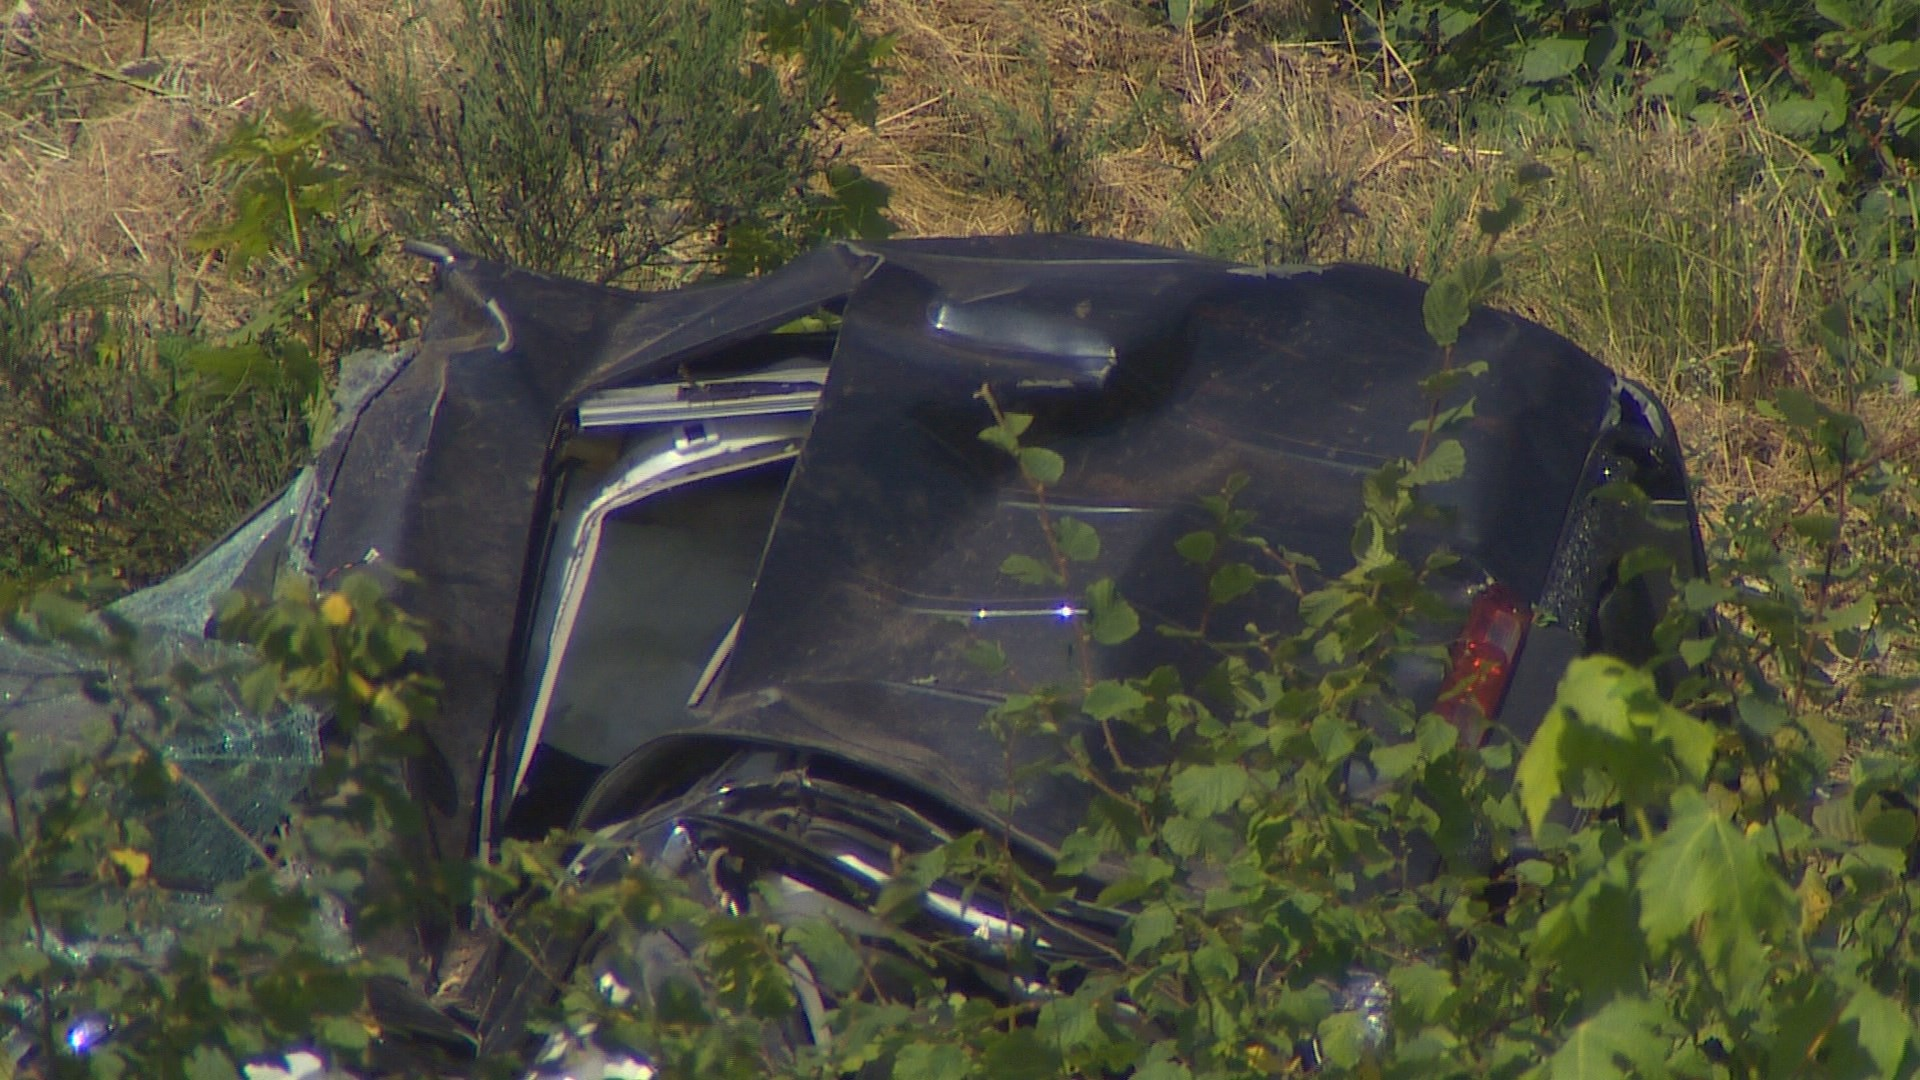 Man, child dead after car goes over embankment in Renton